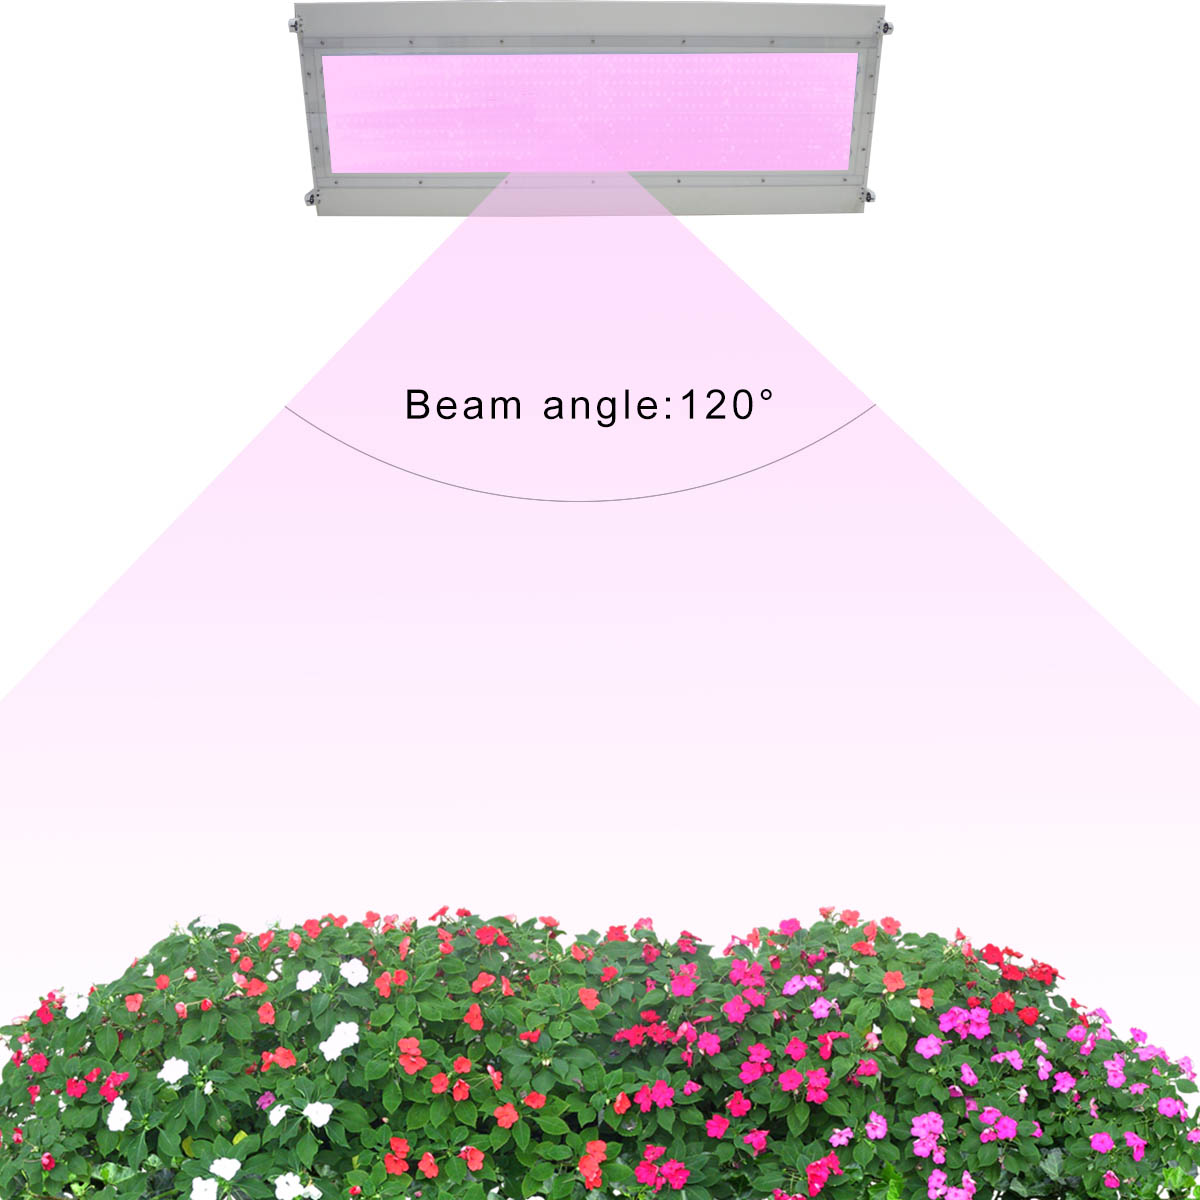 KAWELL 400W 14400lm IP42 100-277V LED Grow Light Lighting for Hydroponics Greenhouse Garden Indoor Plants Seeding Growing/Flowering